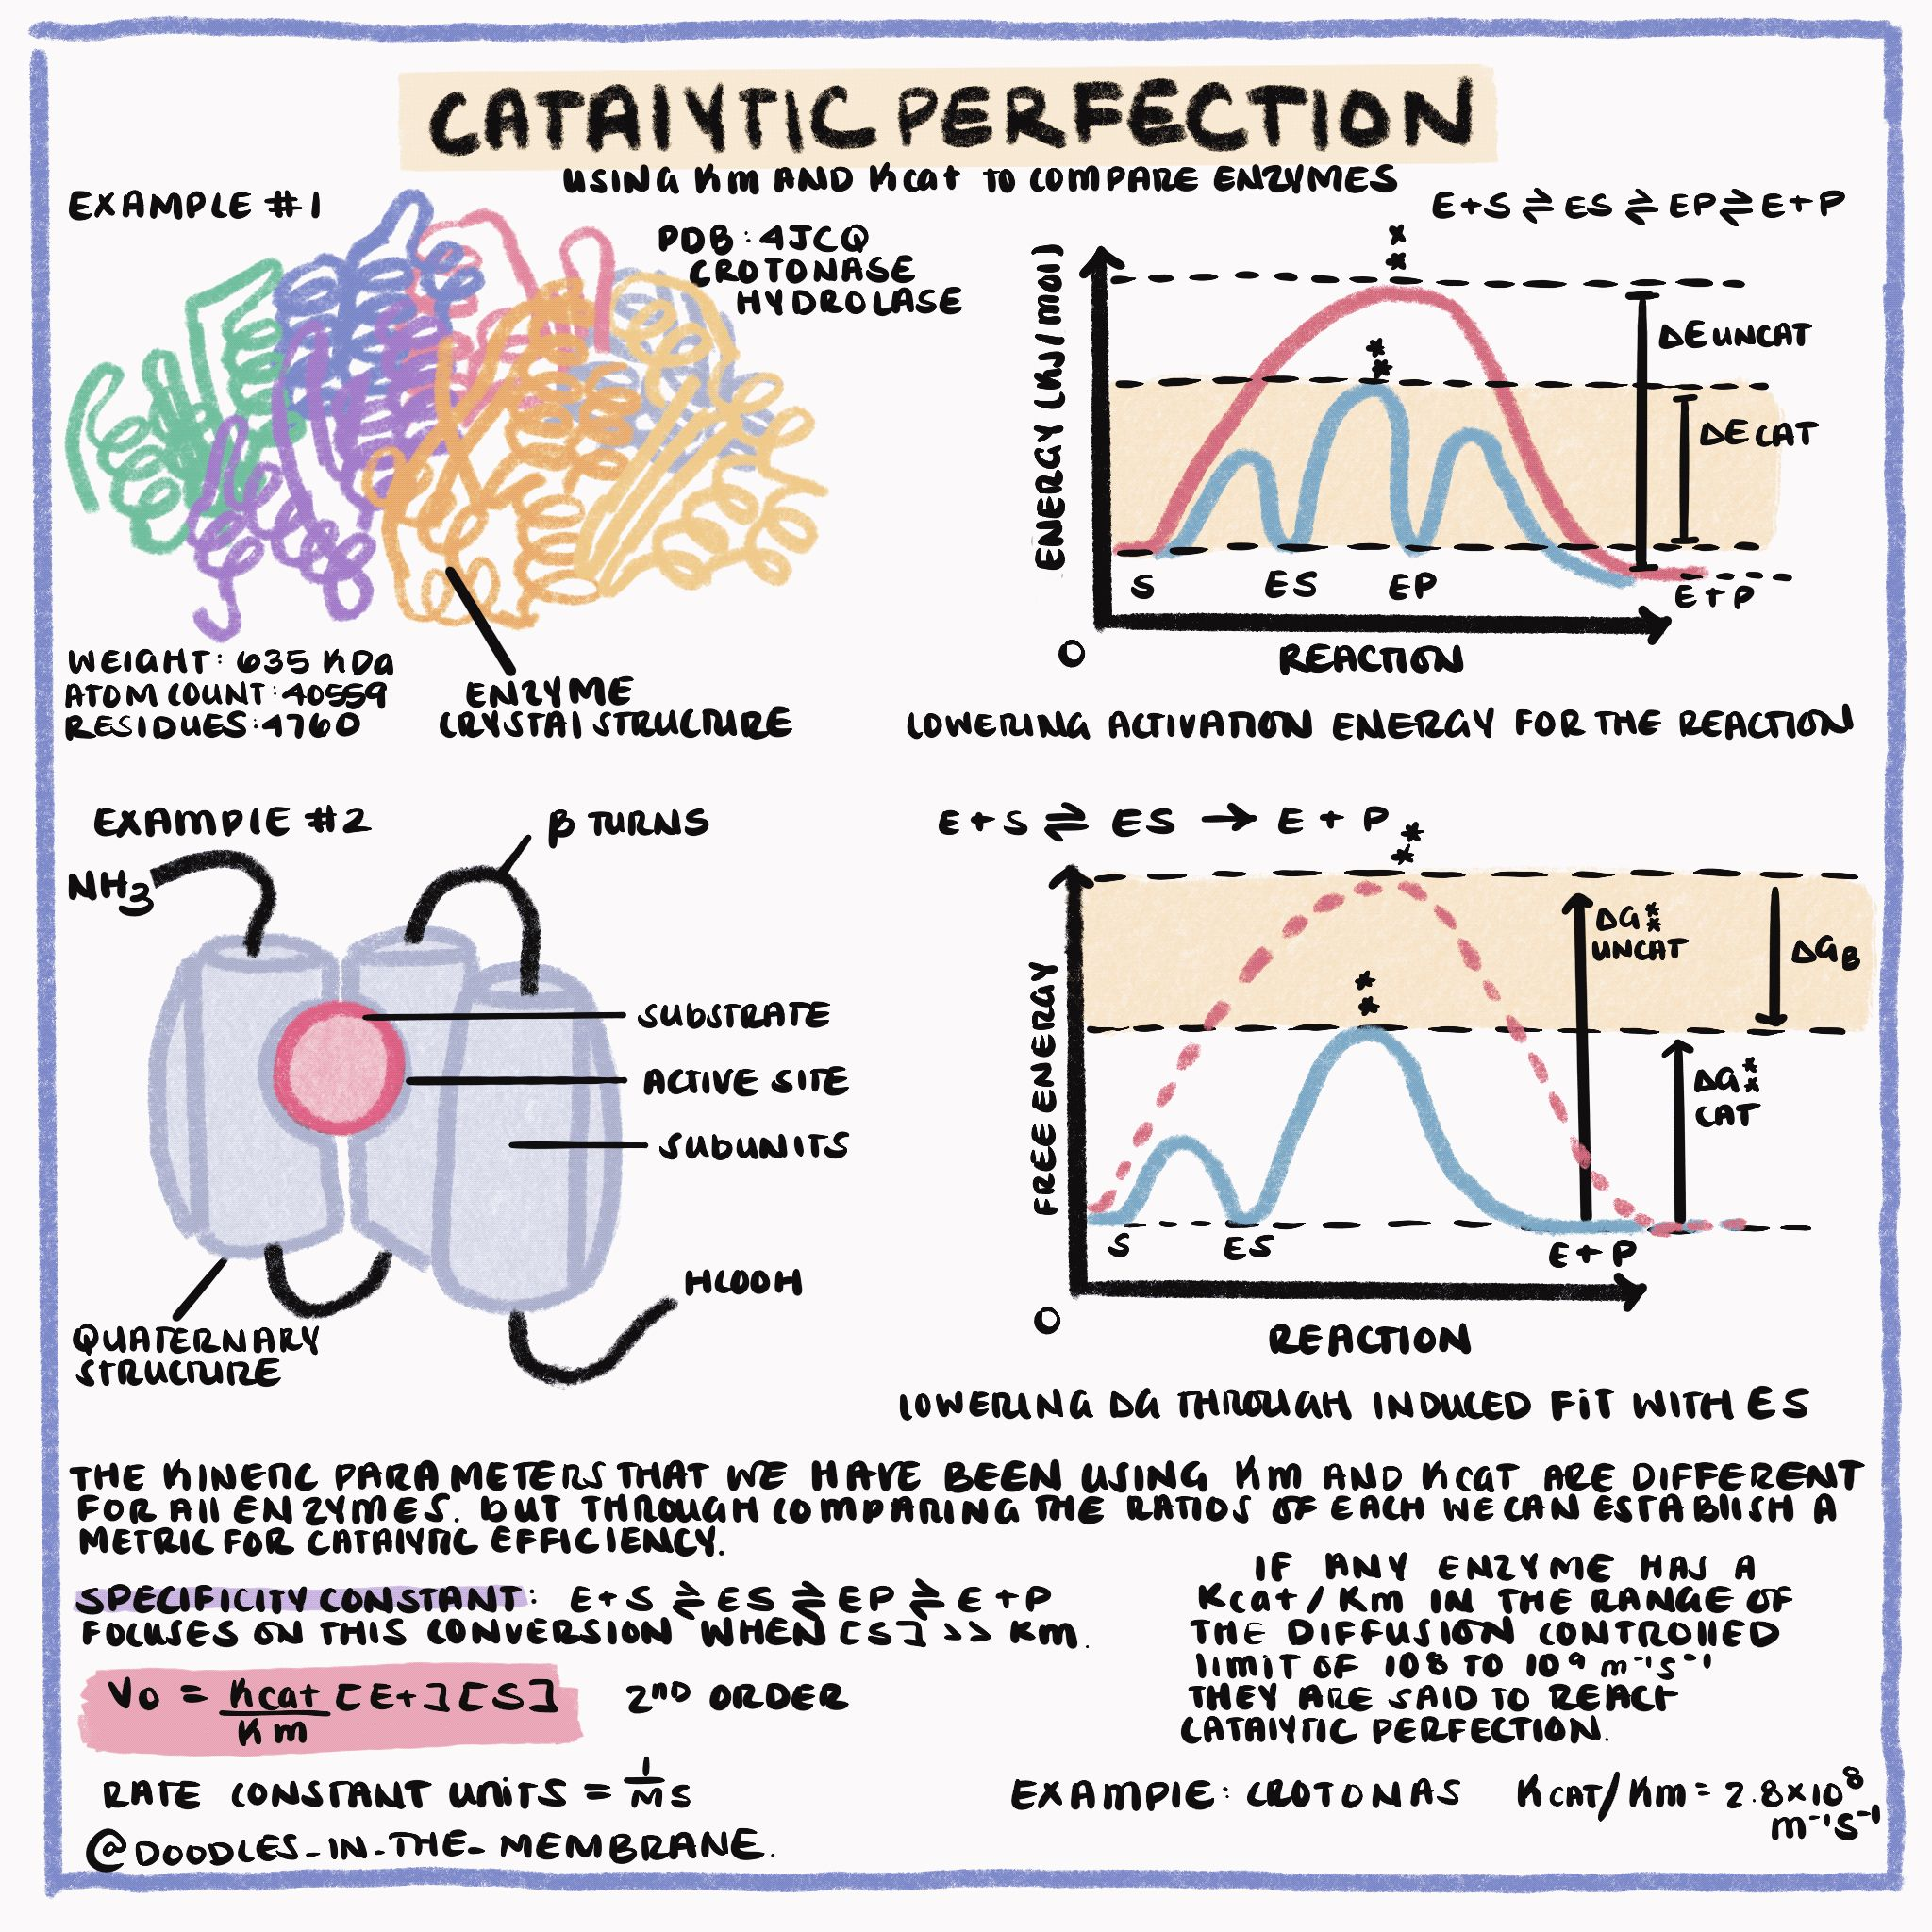 Catalytic Perfection In